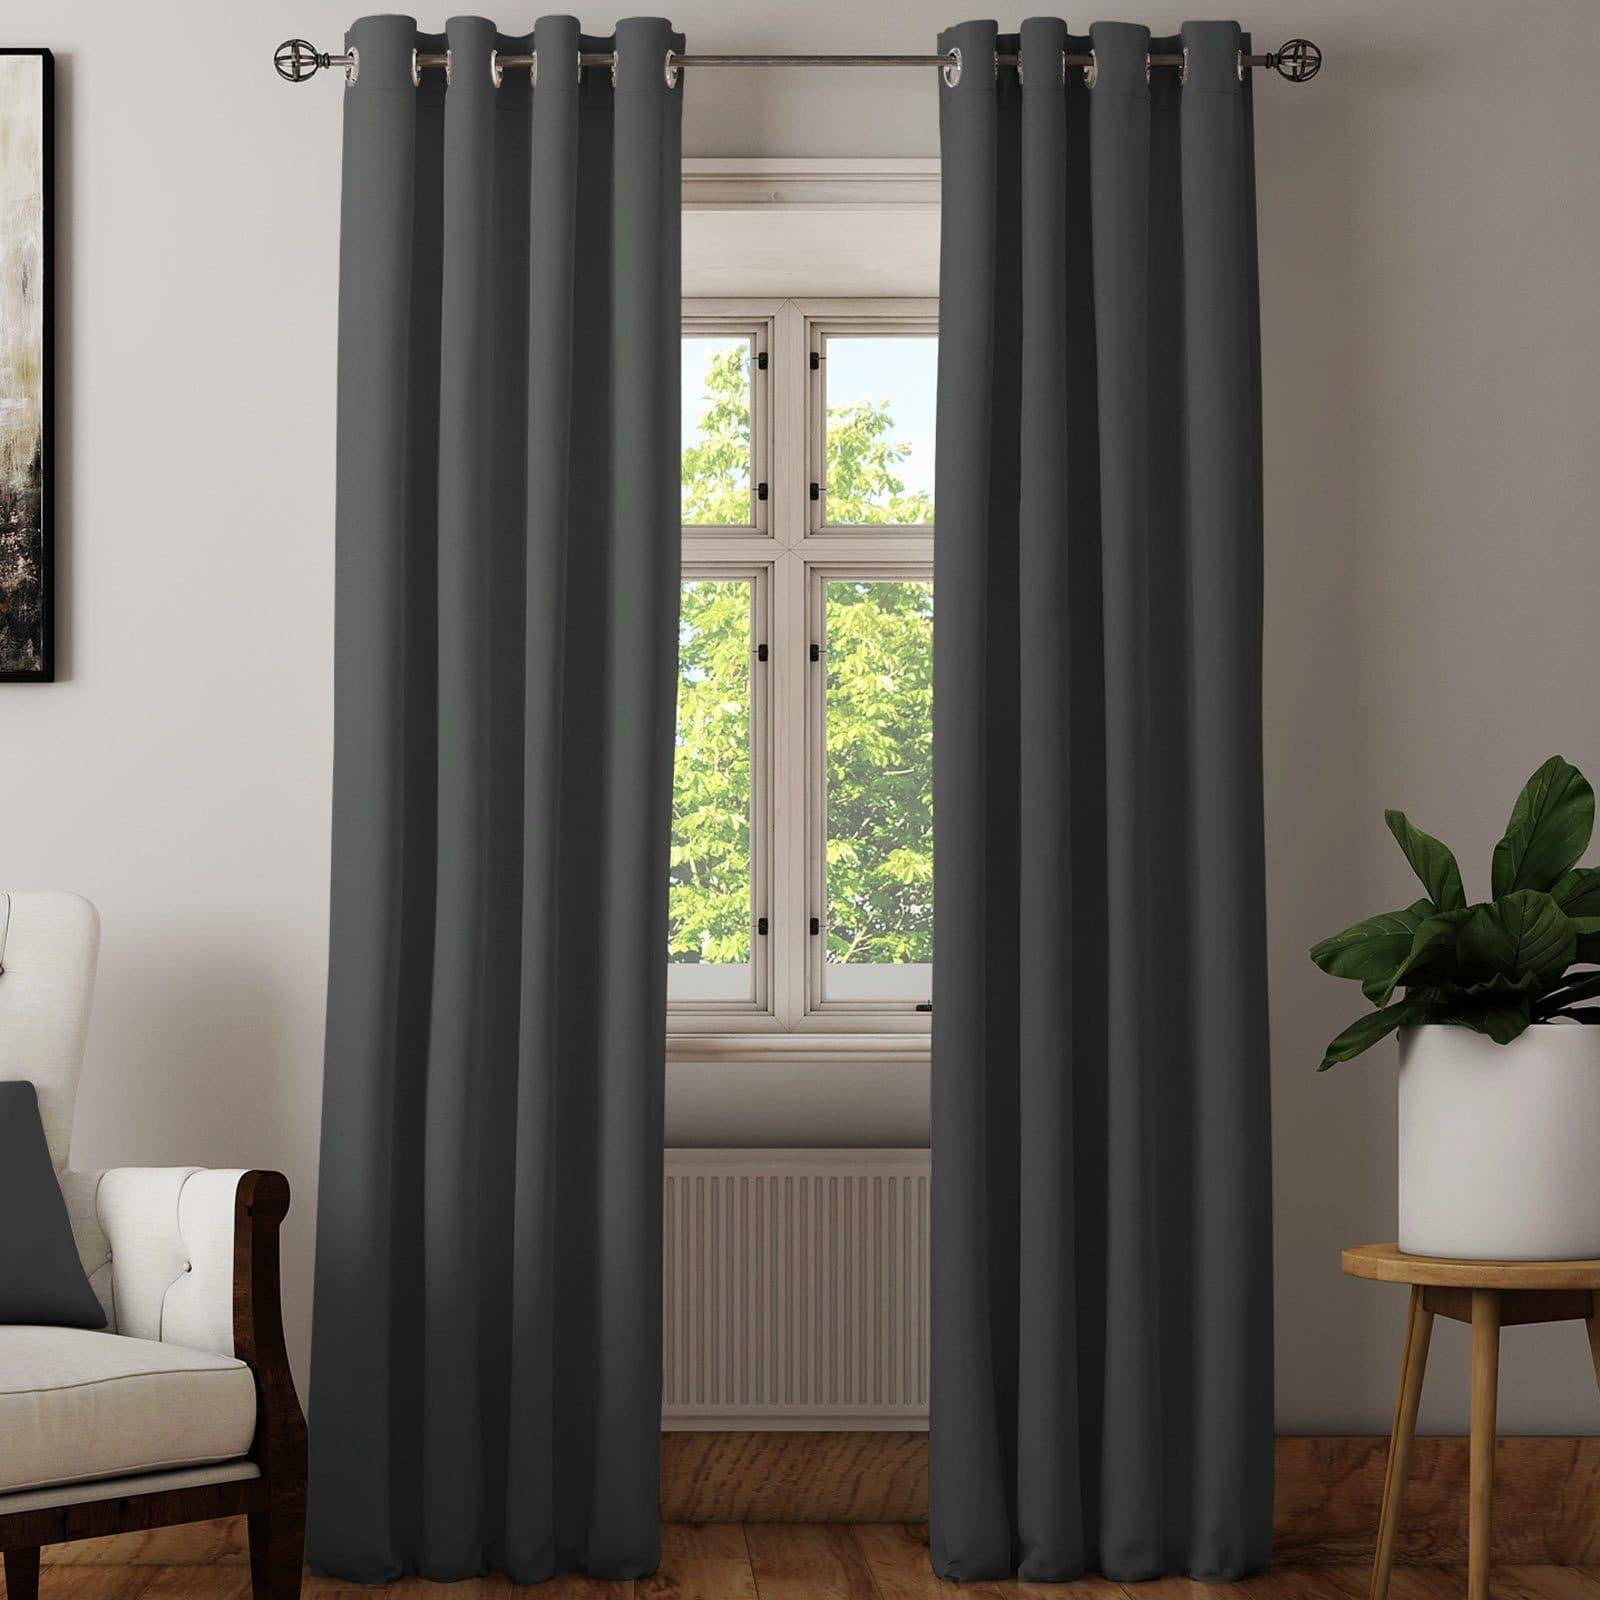 Hudson Plain Block-Out Thermal Eyelet Curtains Charcoal - 46'' x 54'' - Ideal Textiles